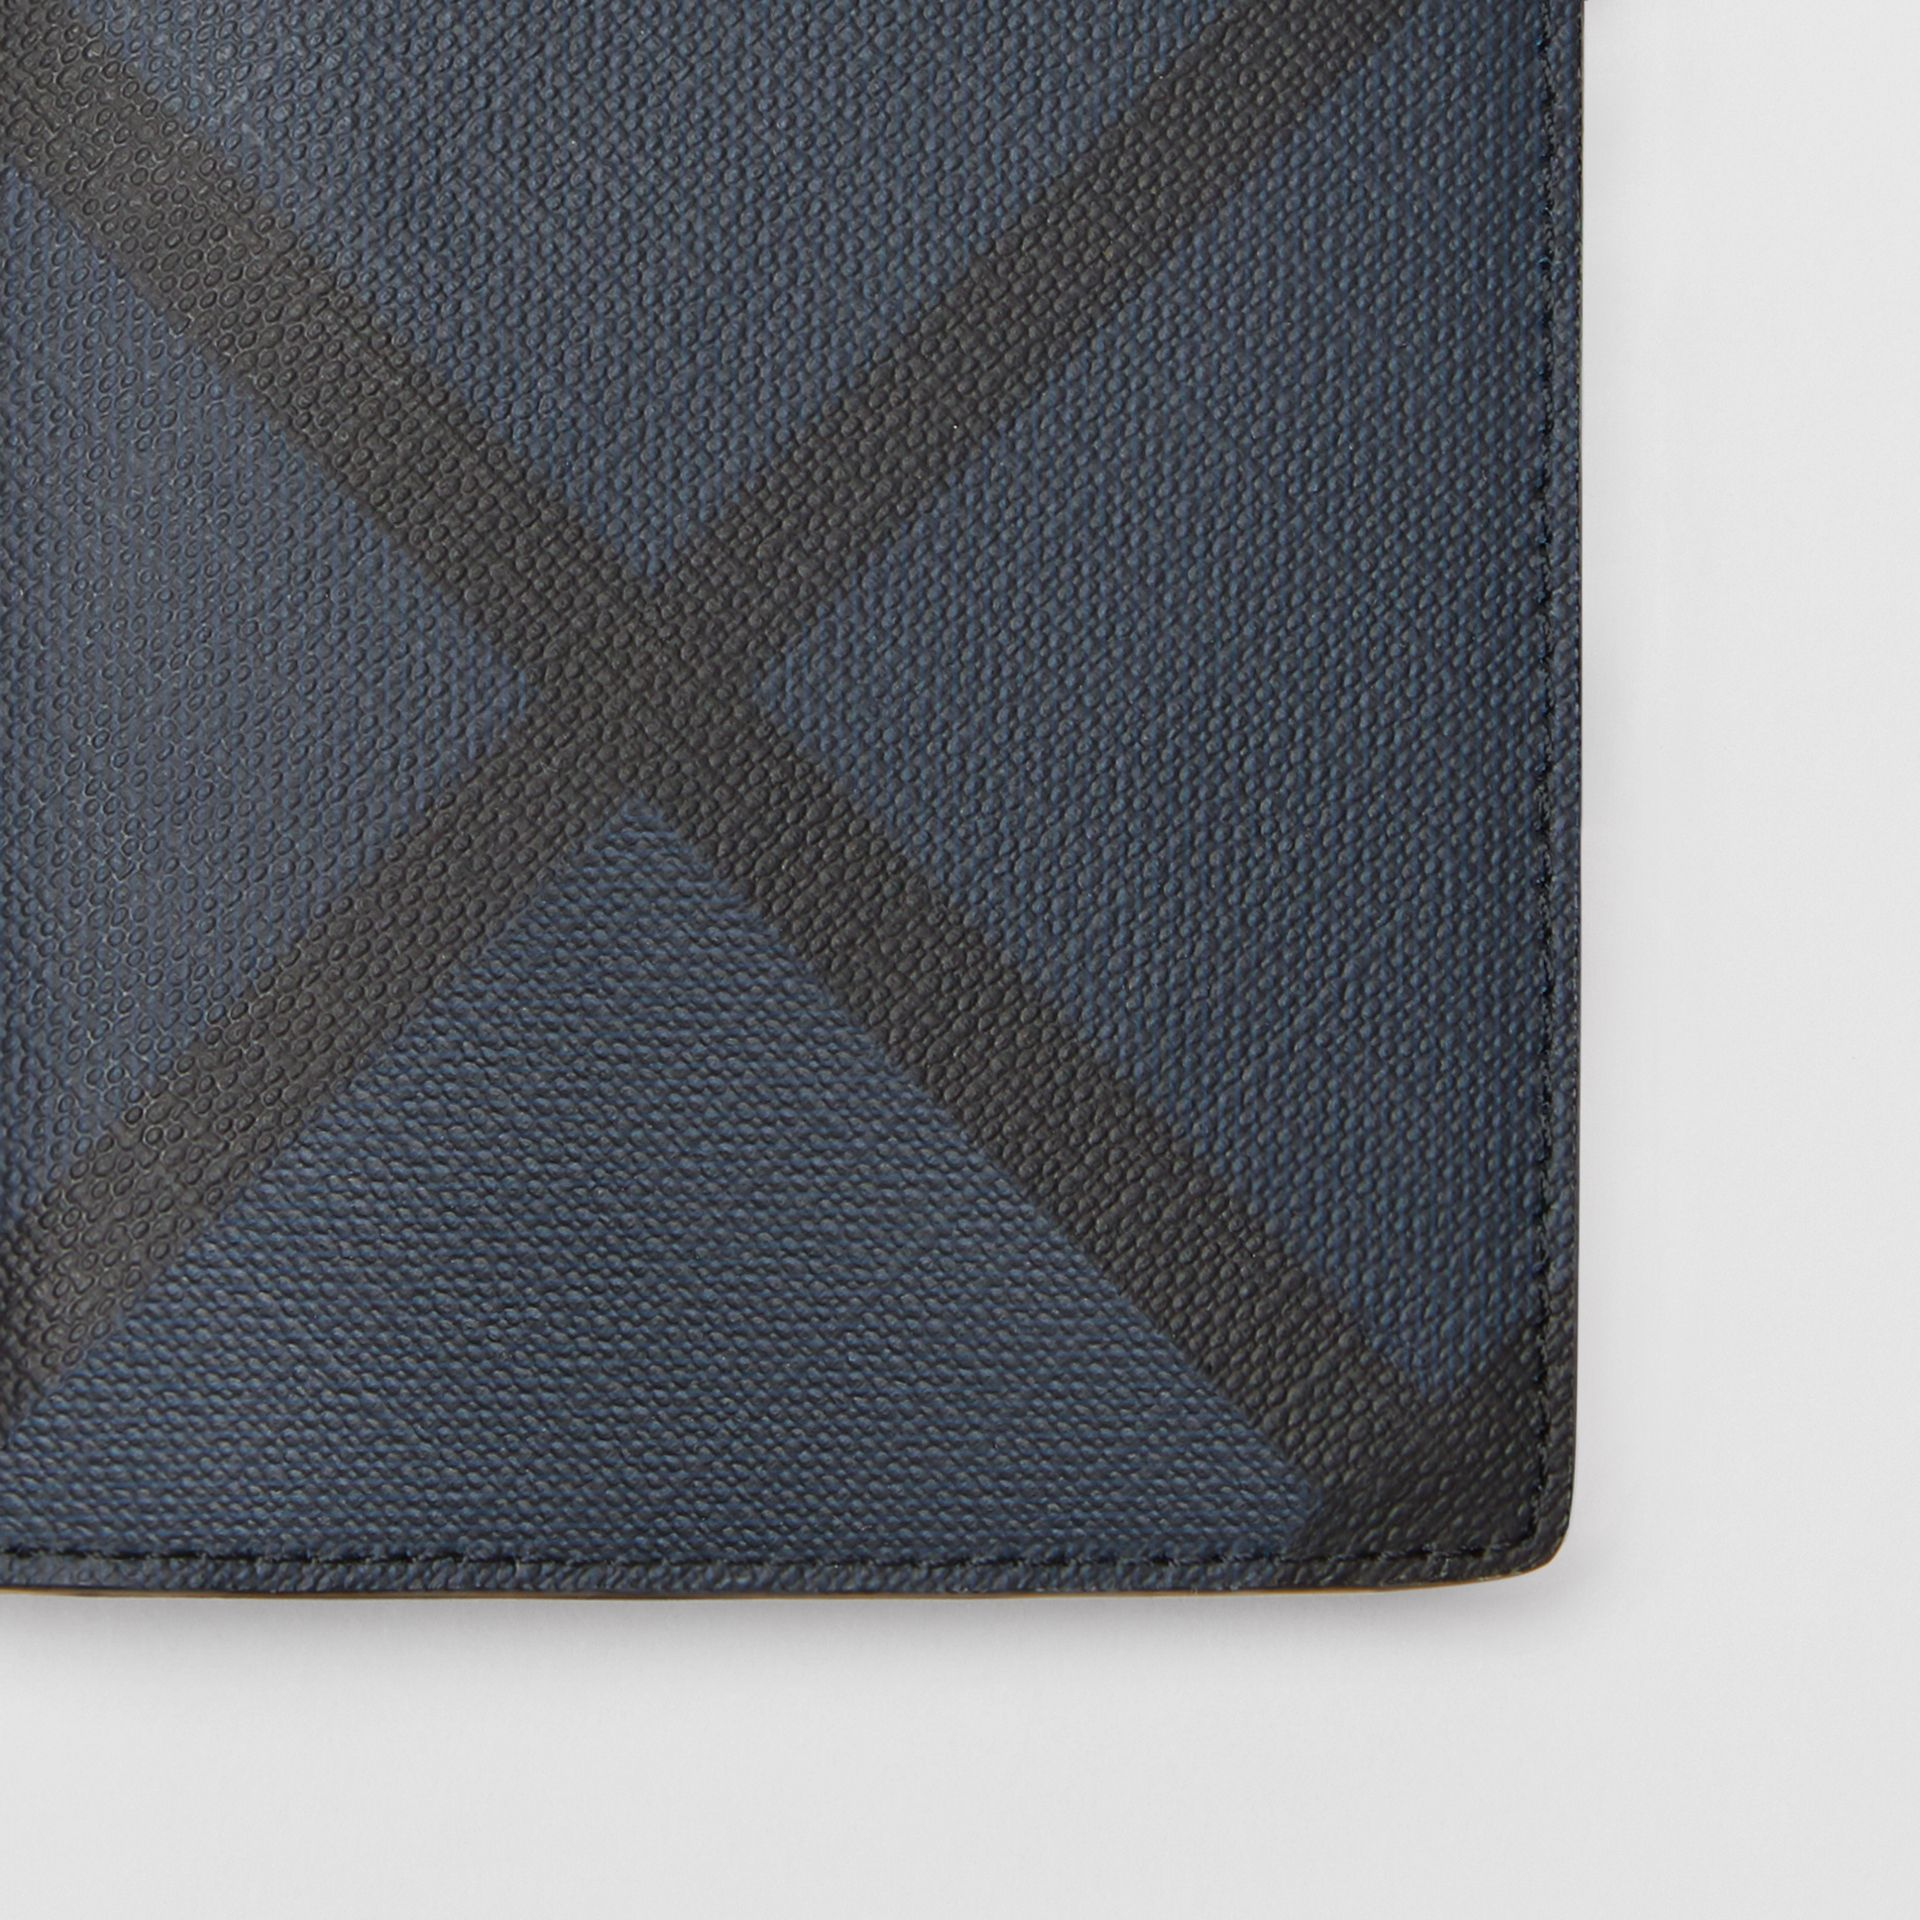 London Check and Leather Continental Wallet in Navy/black - Men | Burberry United Kingdom - gallery image 1